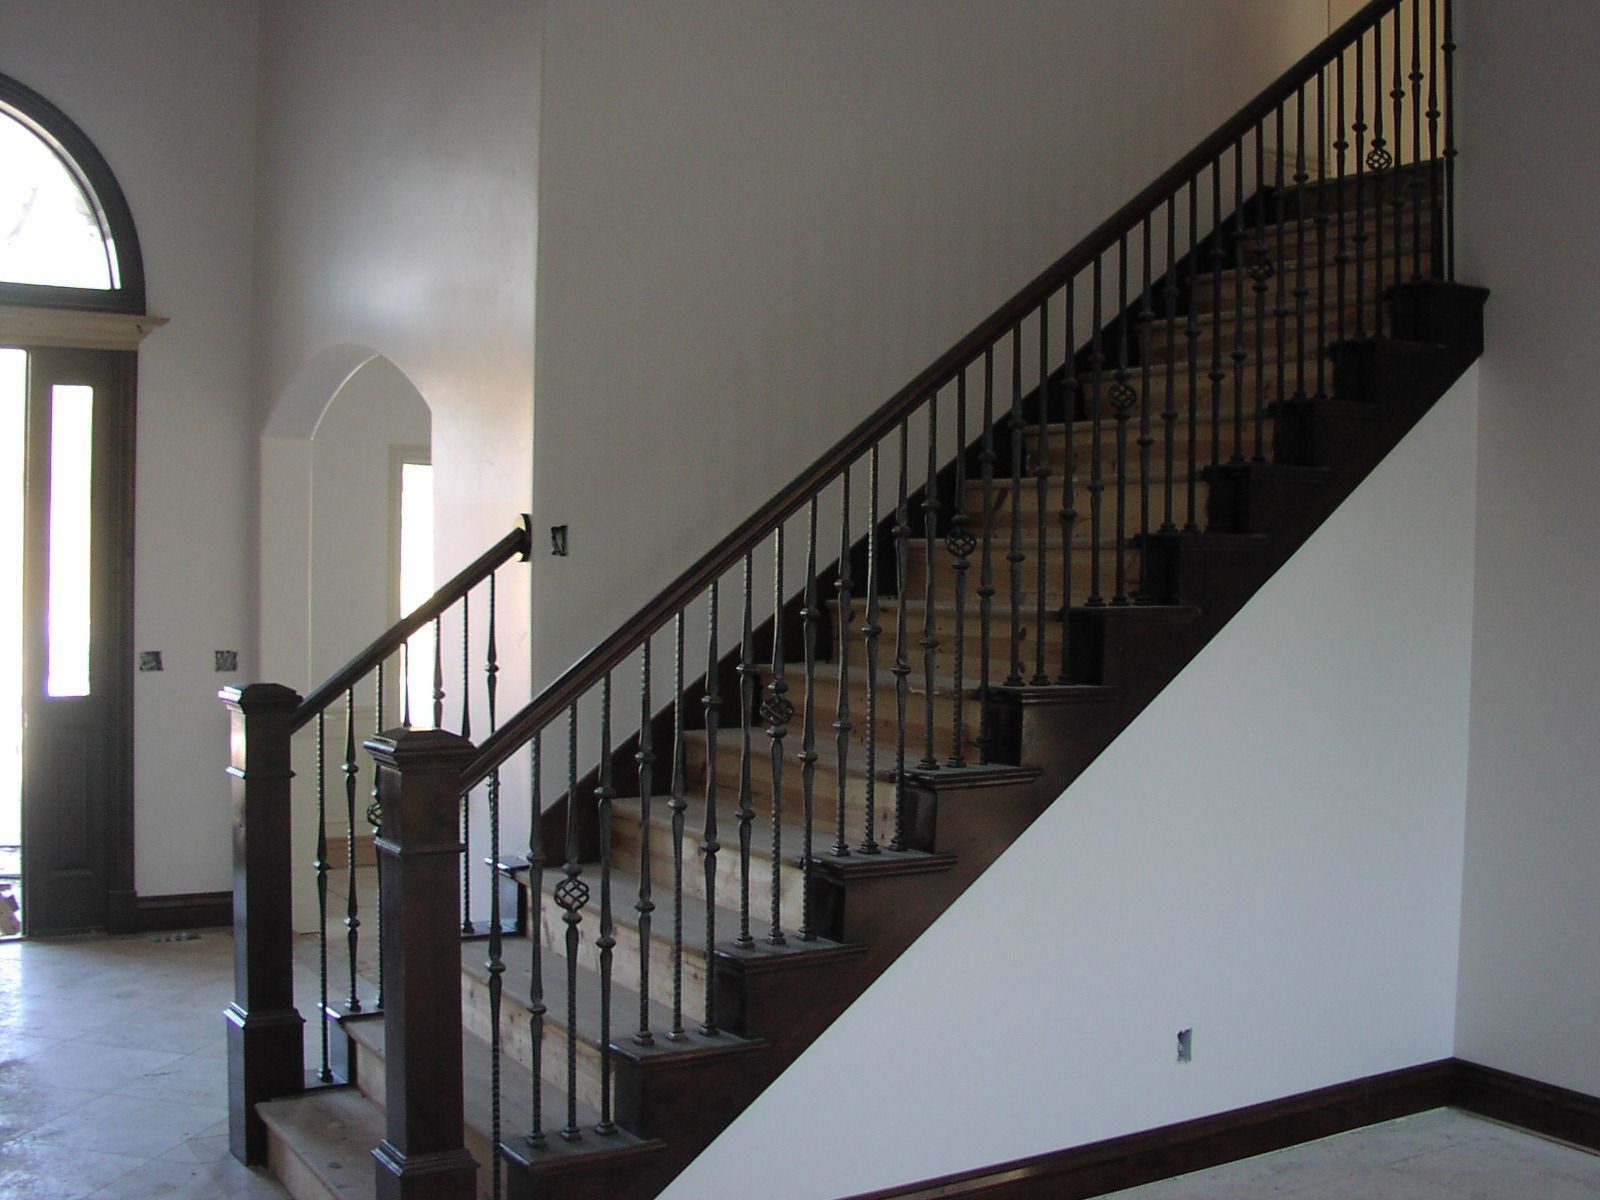 Stair Railing Bing Images Wood Stairs With Carpet In The   Carpet Up Middle Of Stairs